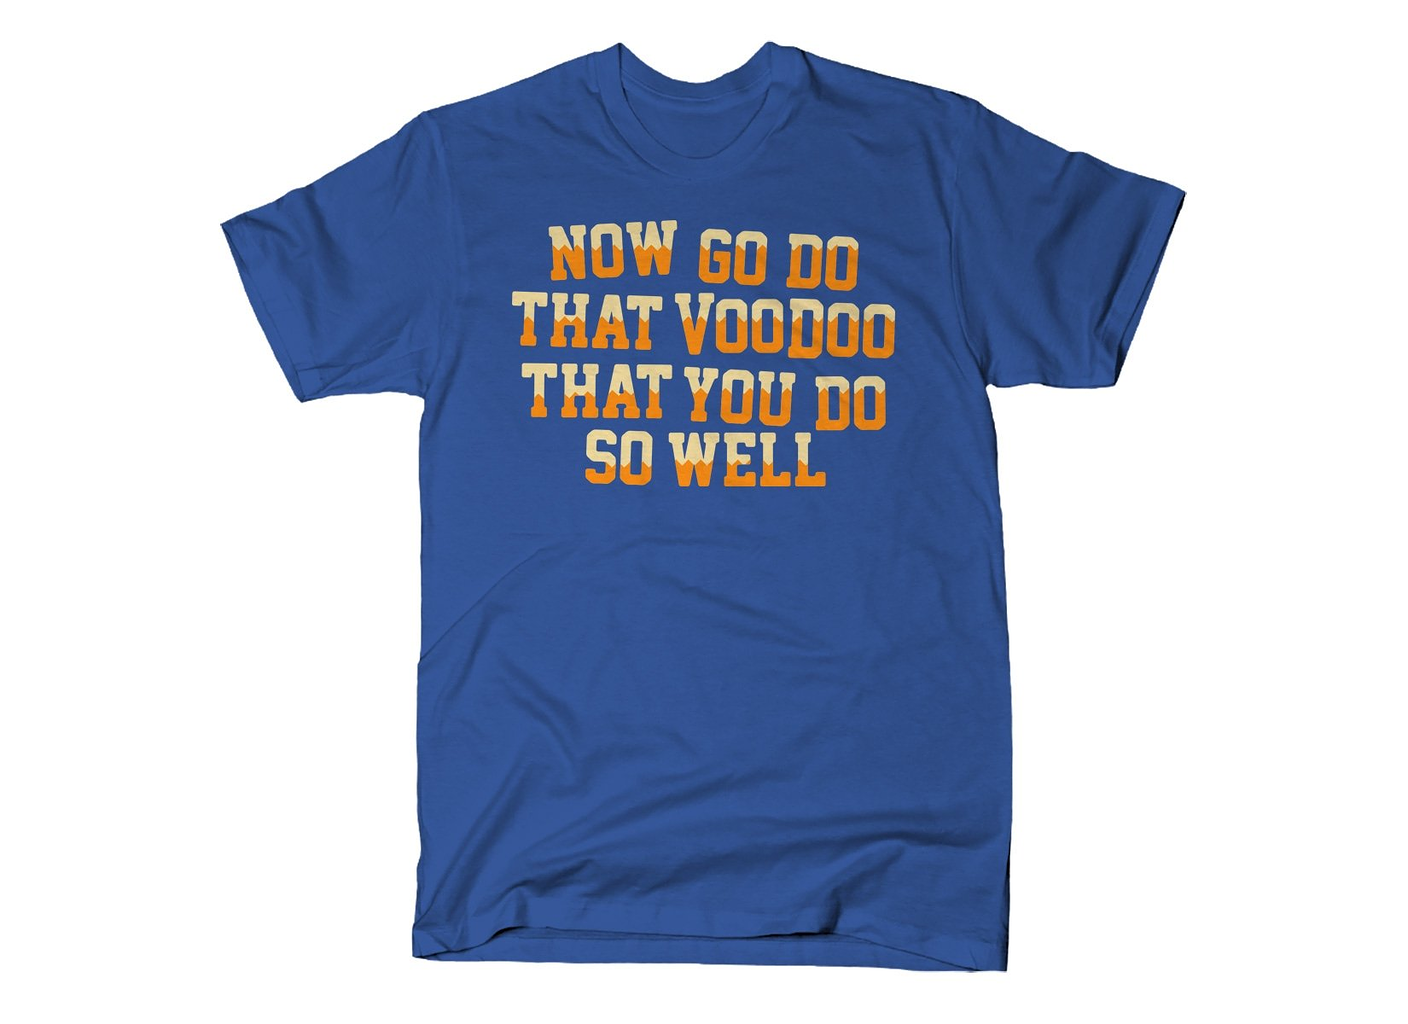 SnorgTees: That Voodoo That You Do So Well